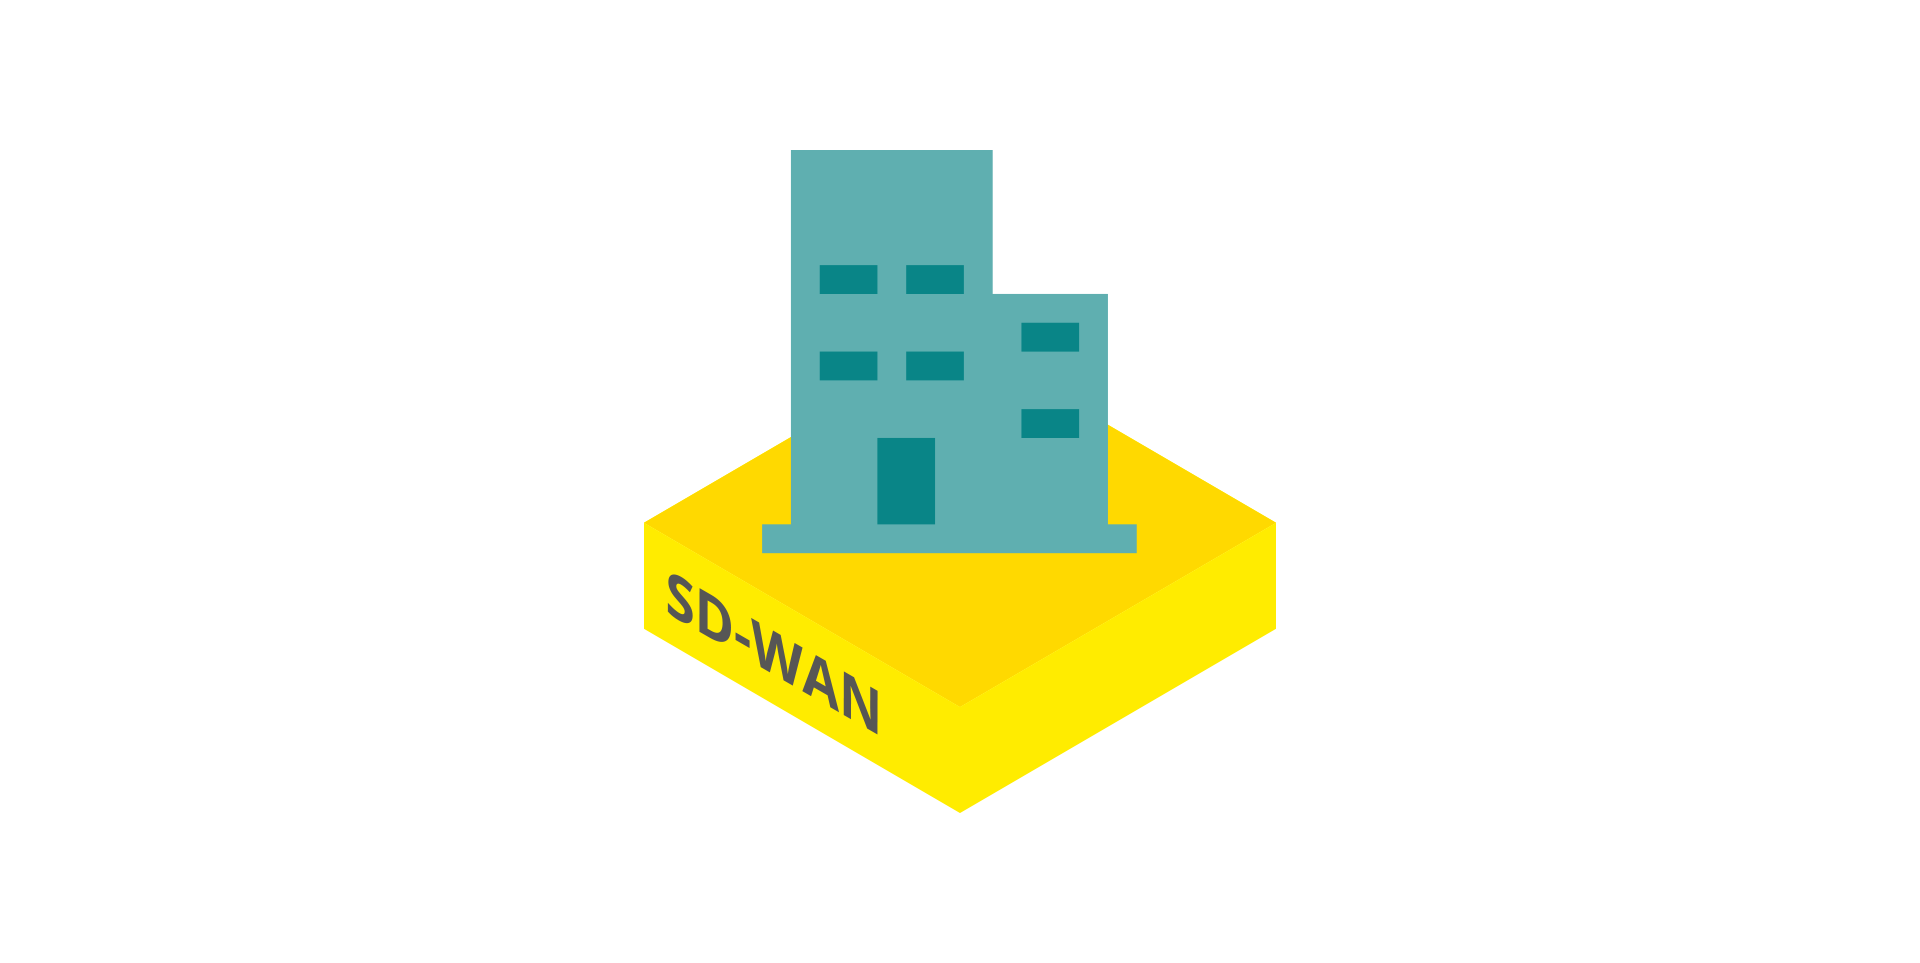 Visual_IT_Infrastructure_SD_WAN.png